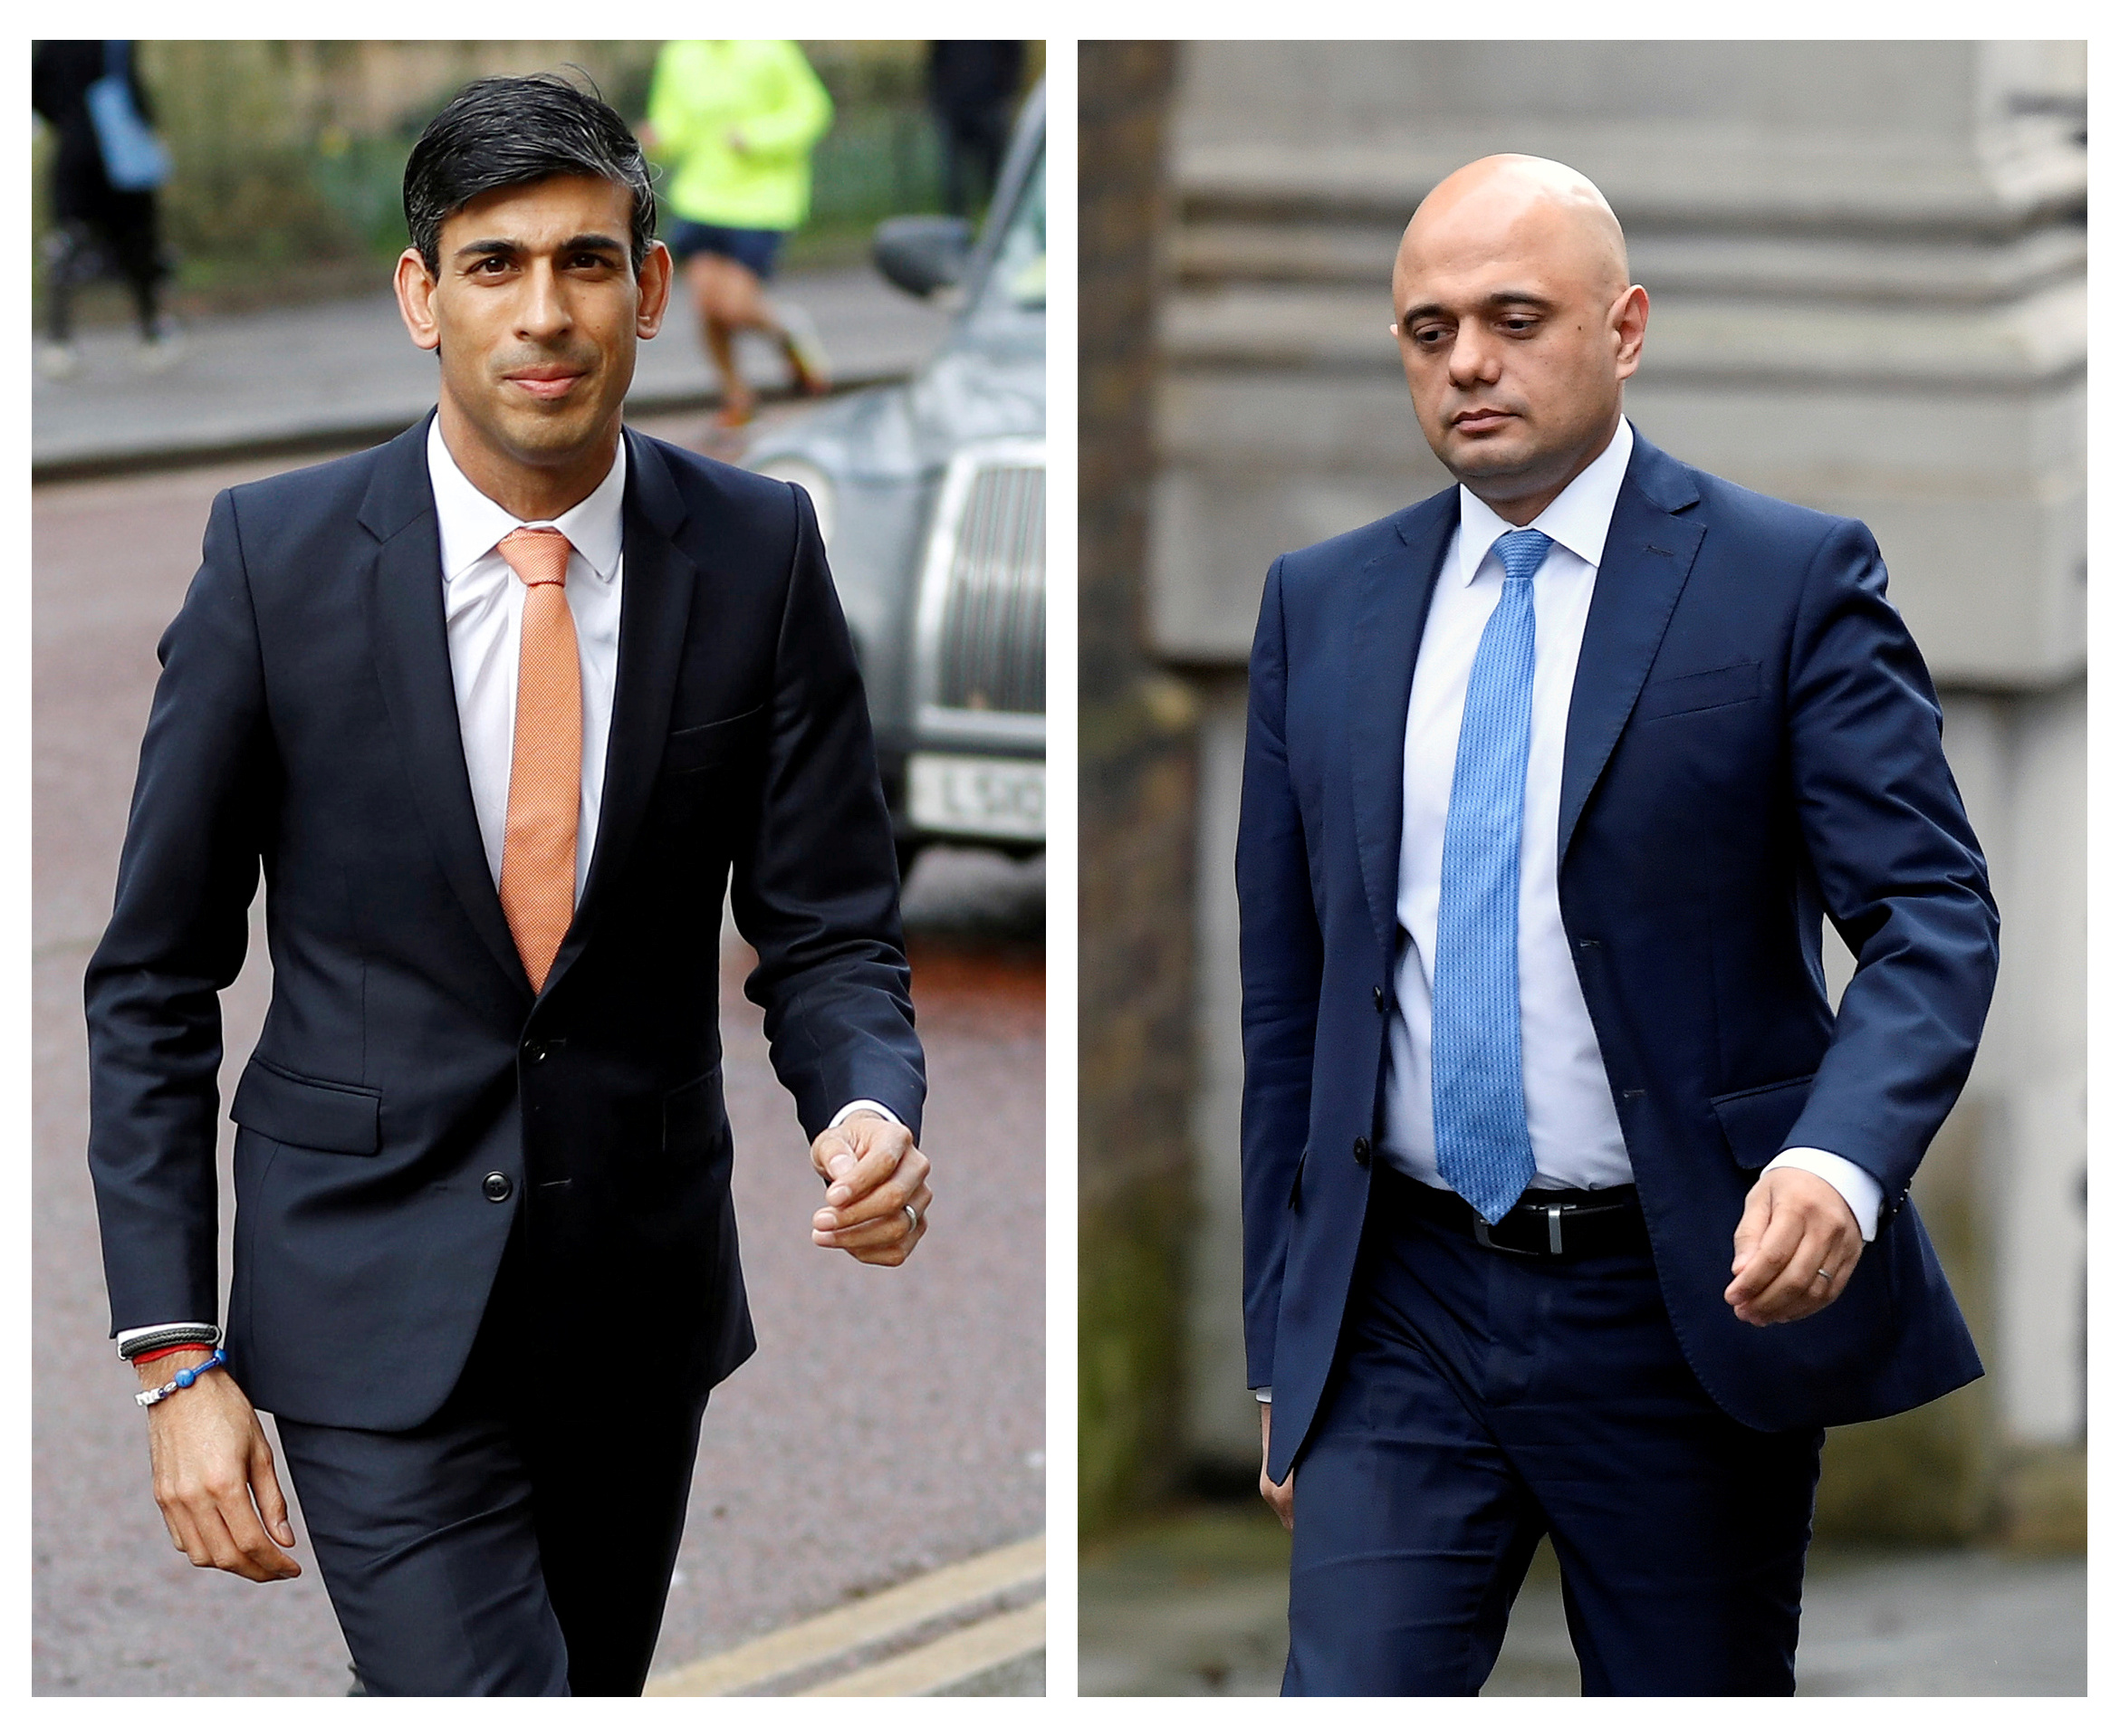 Britain's chancellor of the exchequer Rishi Sunak (L) at the Treasury in London and Sajid Javid ahead of the cabinet reshuffle at Downing Street in London on Thursday